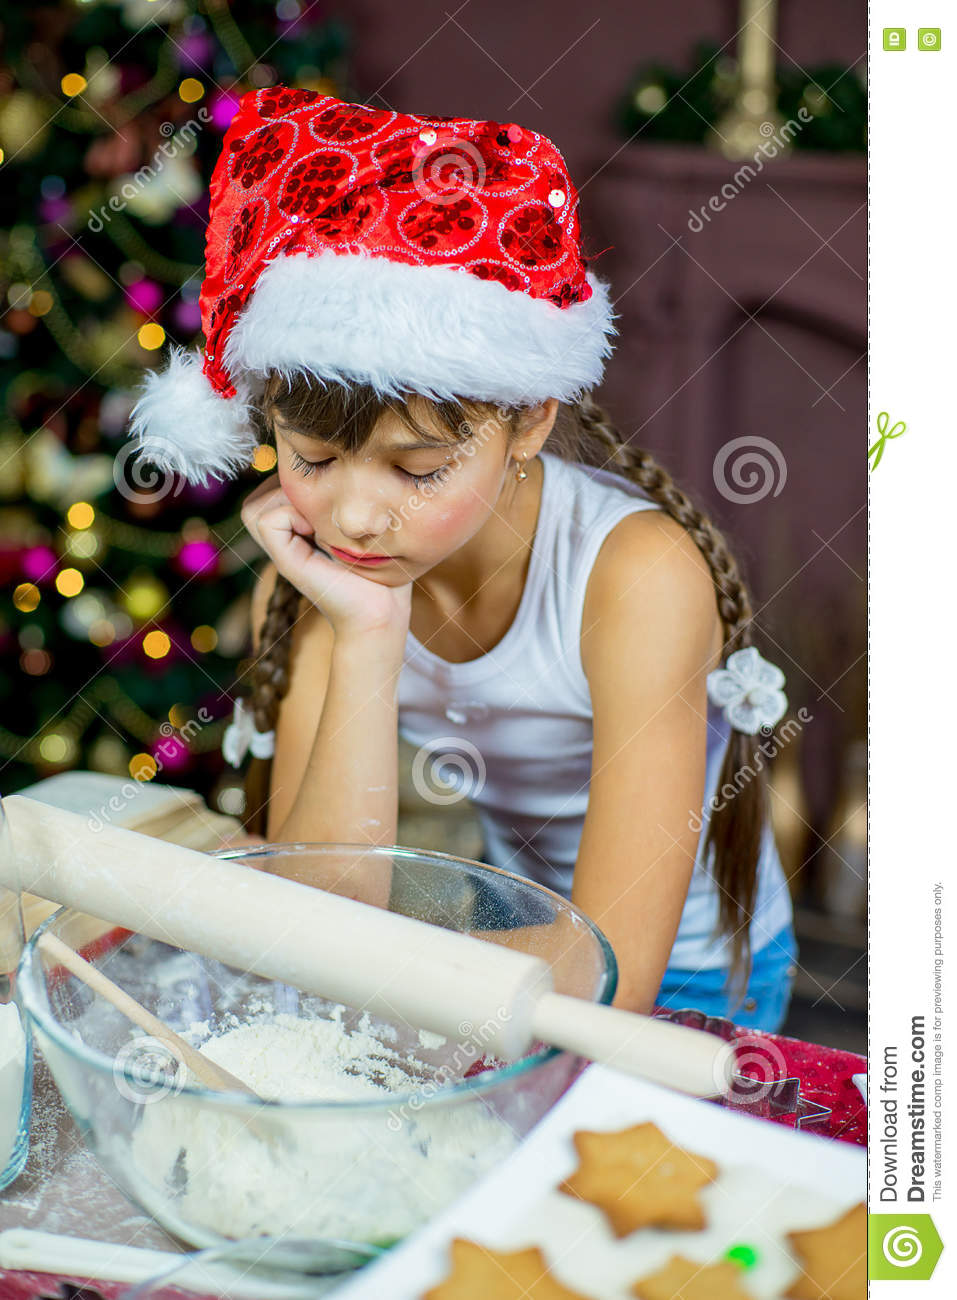 Kids Baking Christmas Cookies Stock Image Image Of Cute Holiday